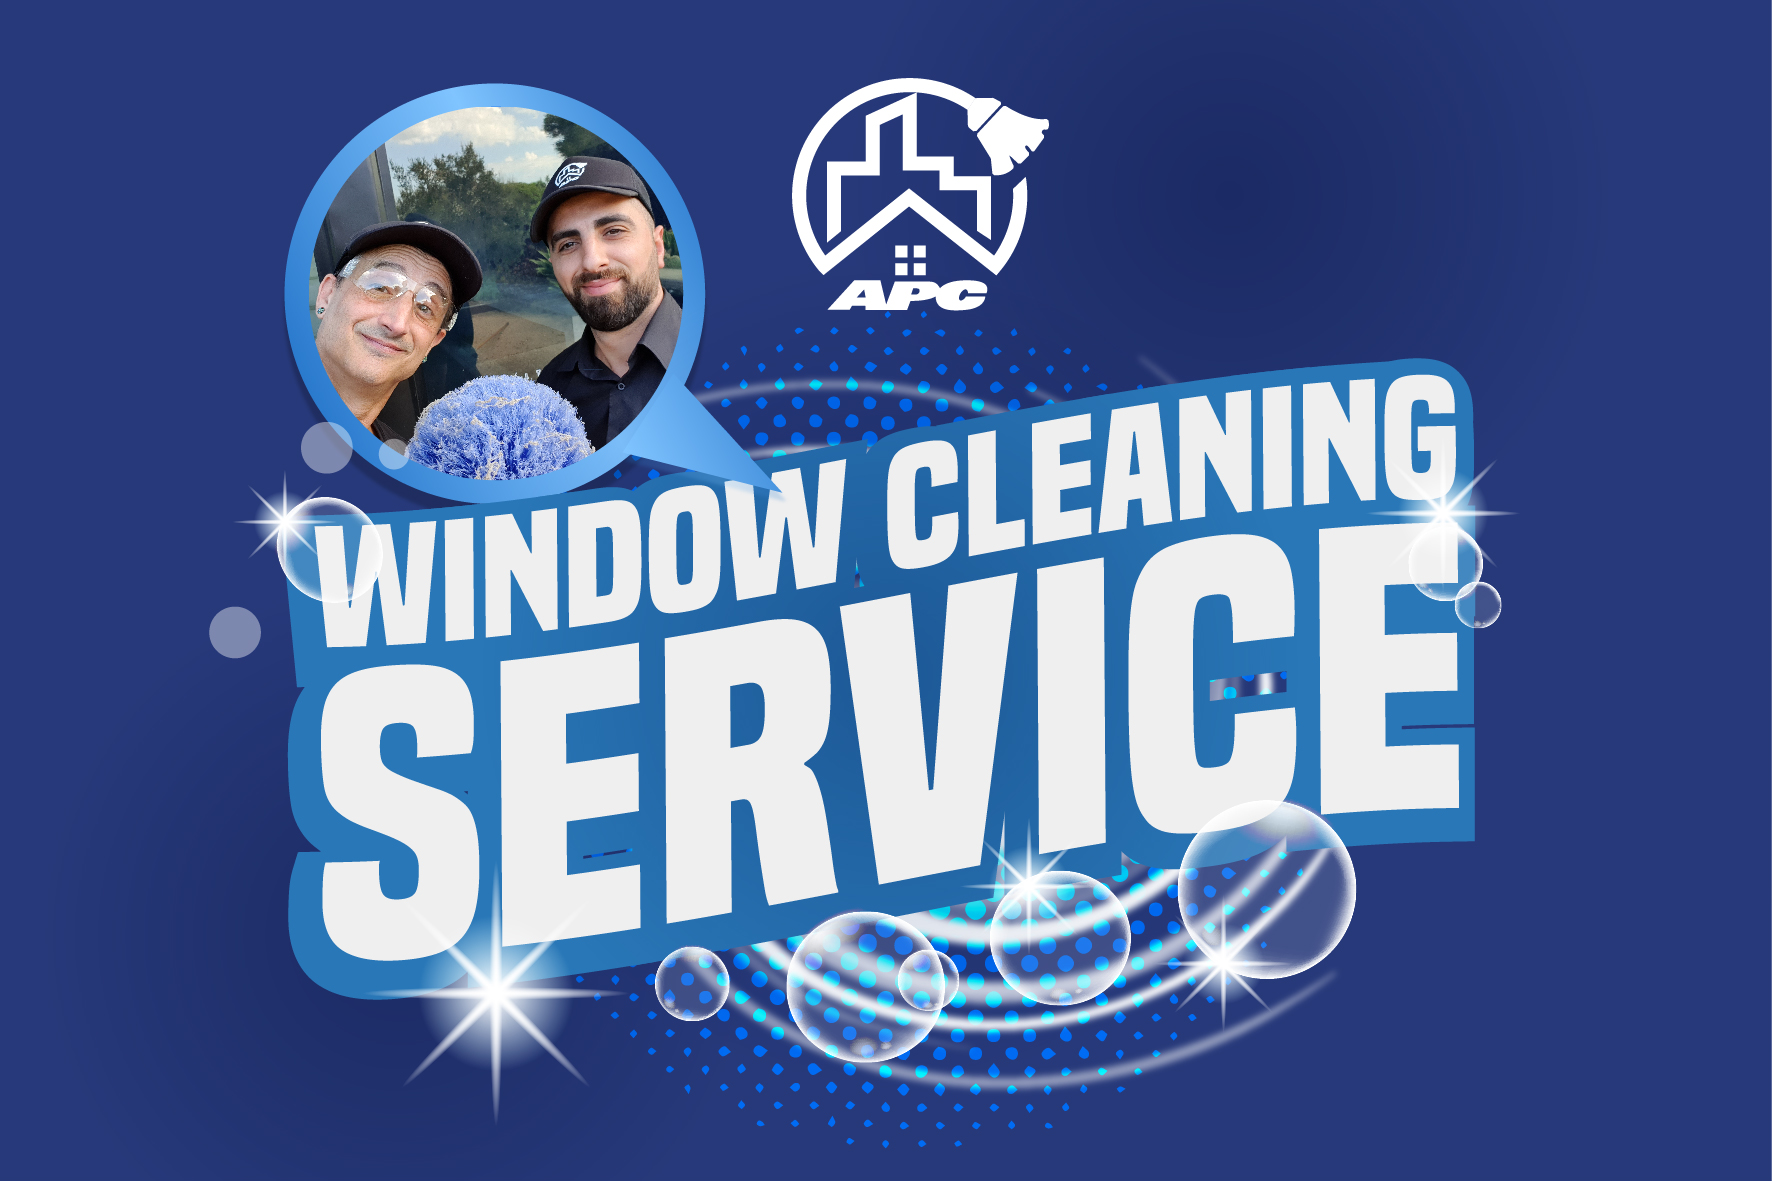 APC Window Cleaning Service